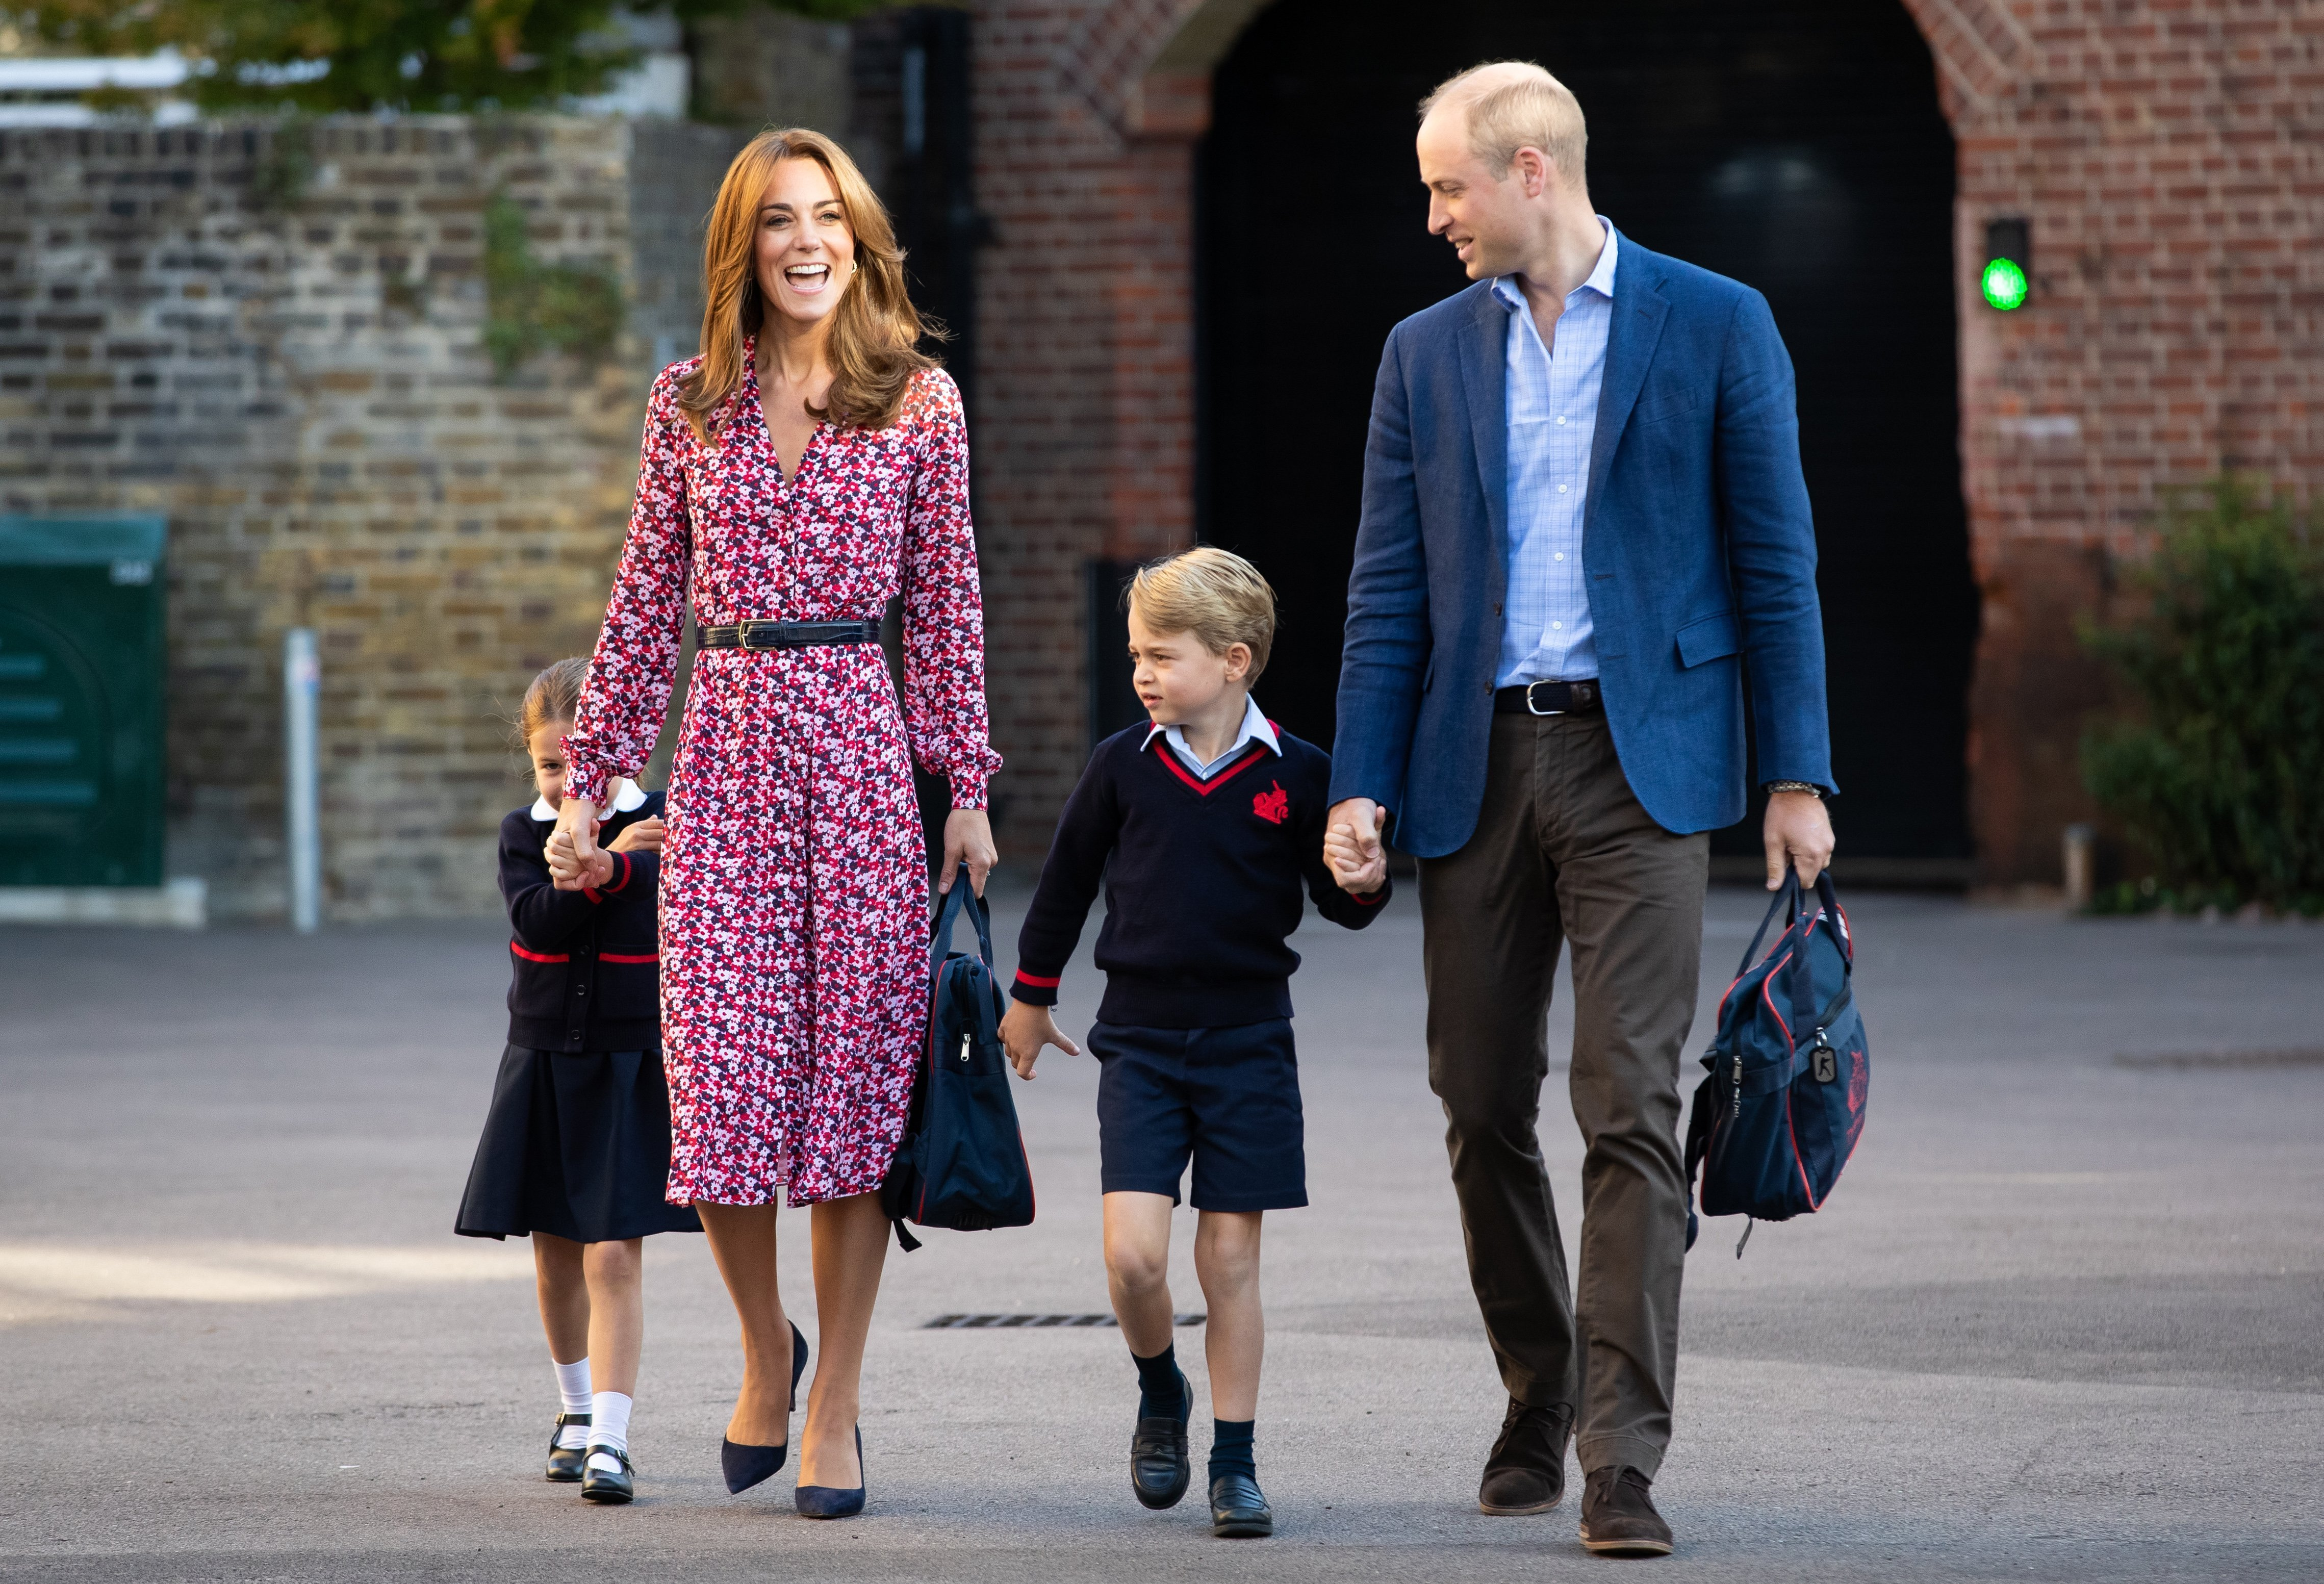 Duchess Kate and Prince William arriving with Princess Charlotte and Prince George at Thomas's Battersea on September 5, 2019, in London, England | Photo: Getty Images